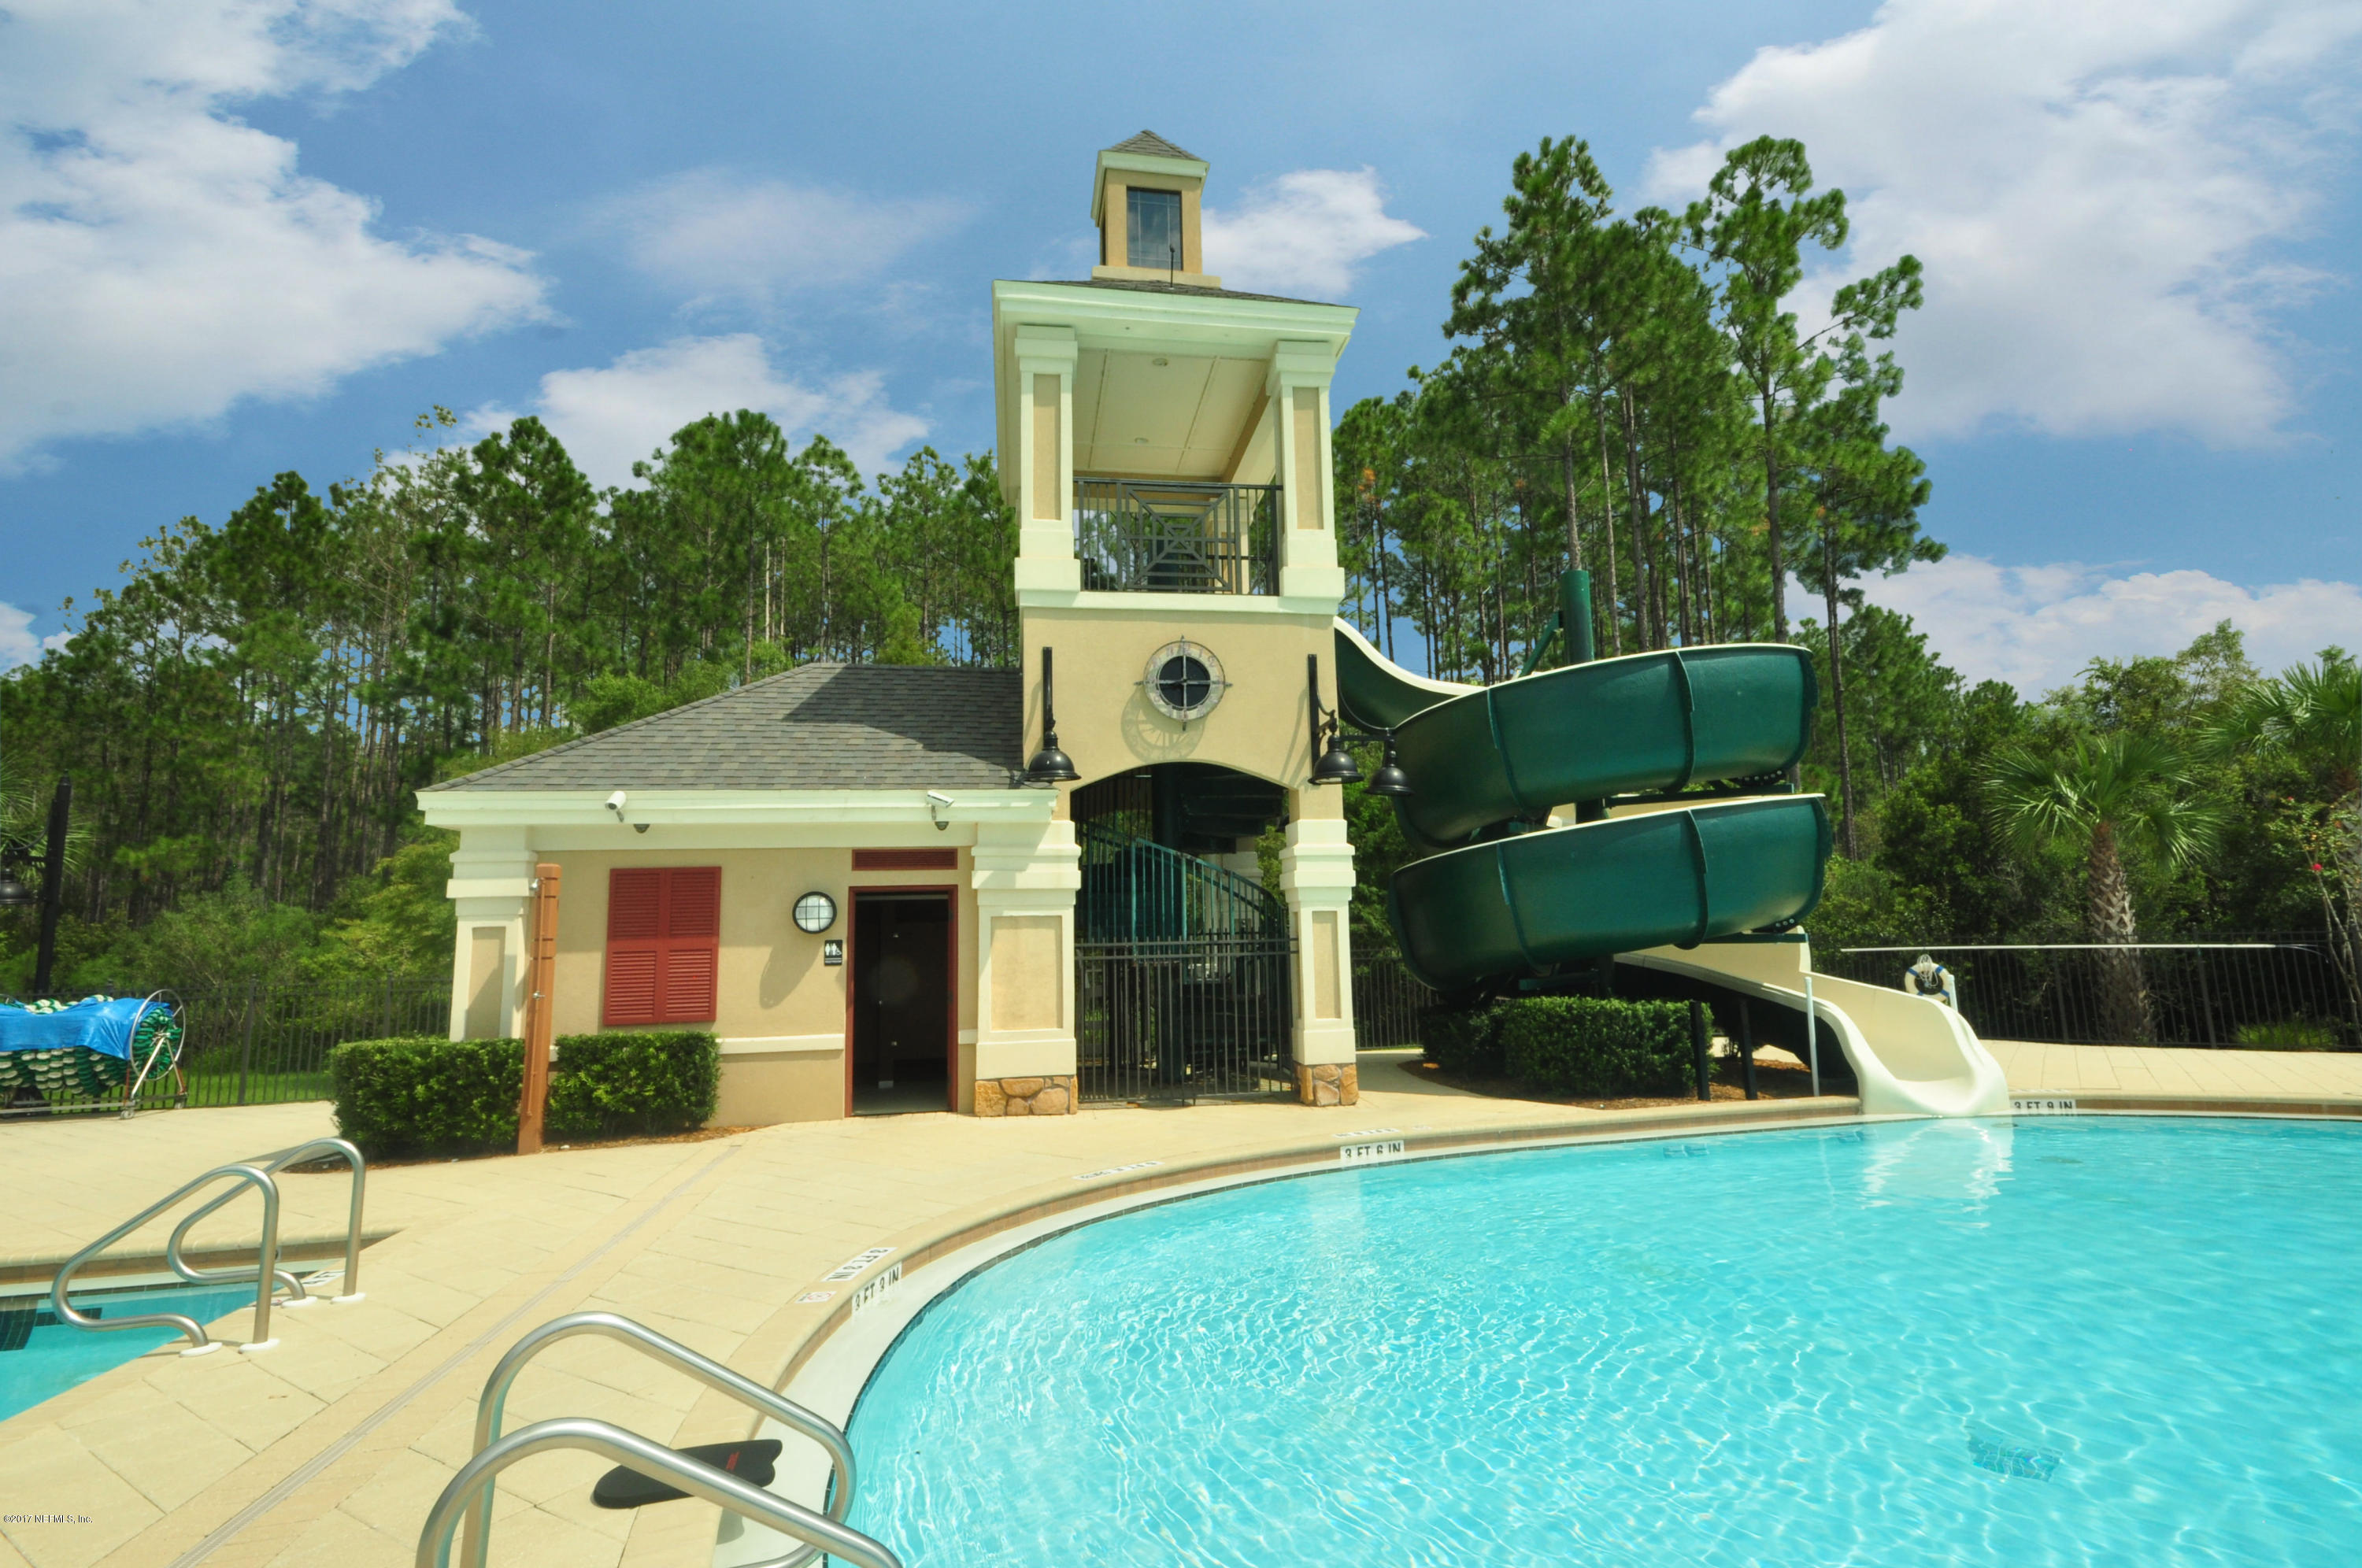 1224 CASTLE TRAIL, ST JOHNS, FLORIDA 32259, 4 Bedrooms Bedrooms, ,3 BathroomsBathrooms,Residential,For sale,CASTLE TRAIL,1055550